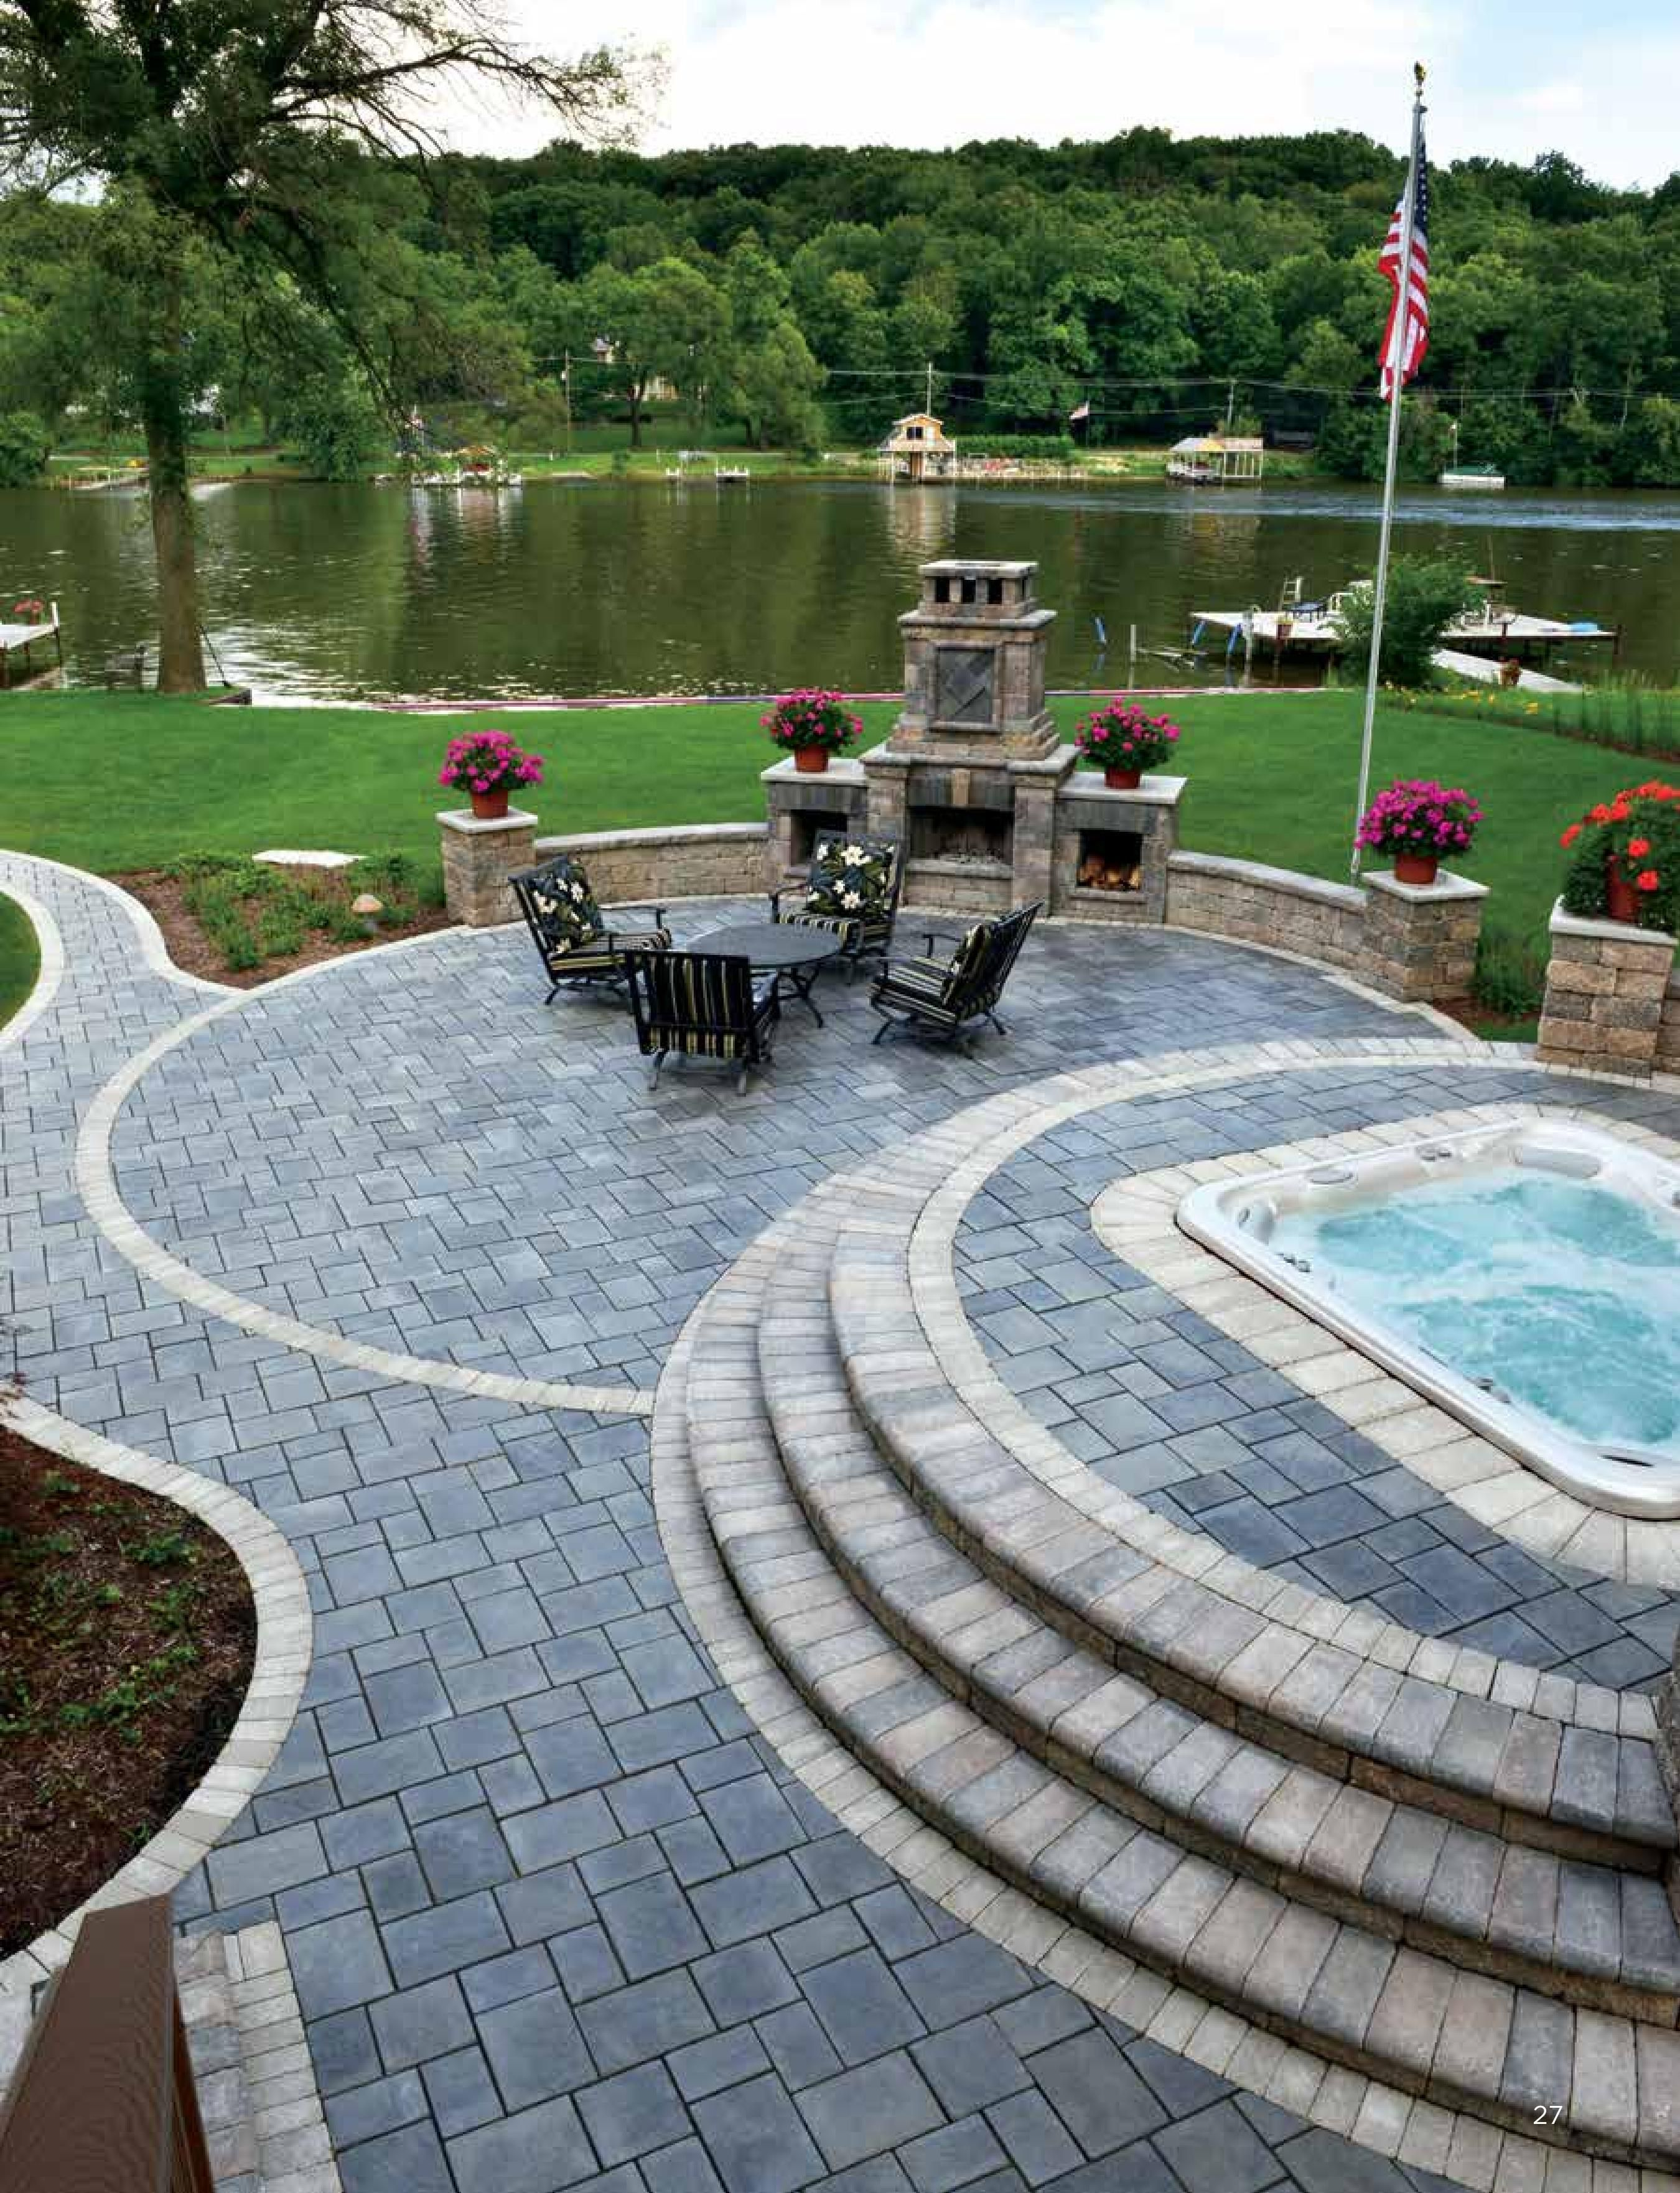 Create your dream outdoor living hardscapes. Check out our hardscape ...